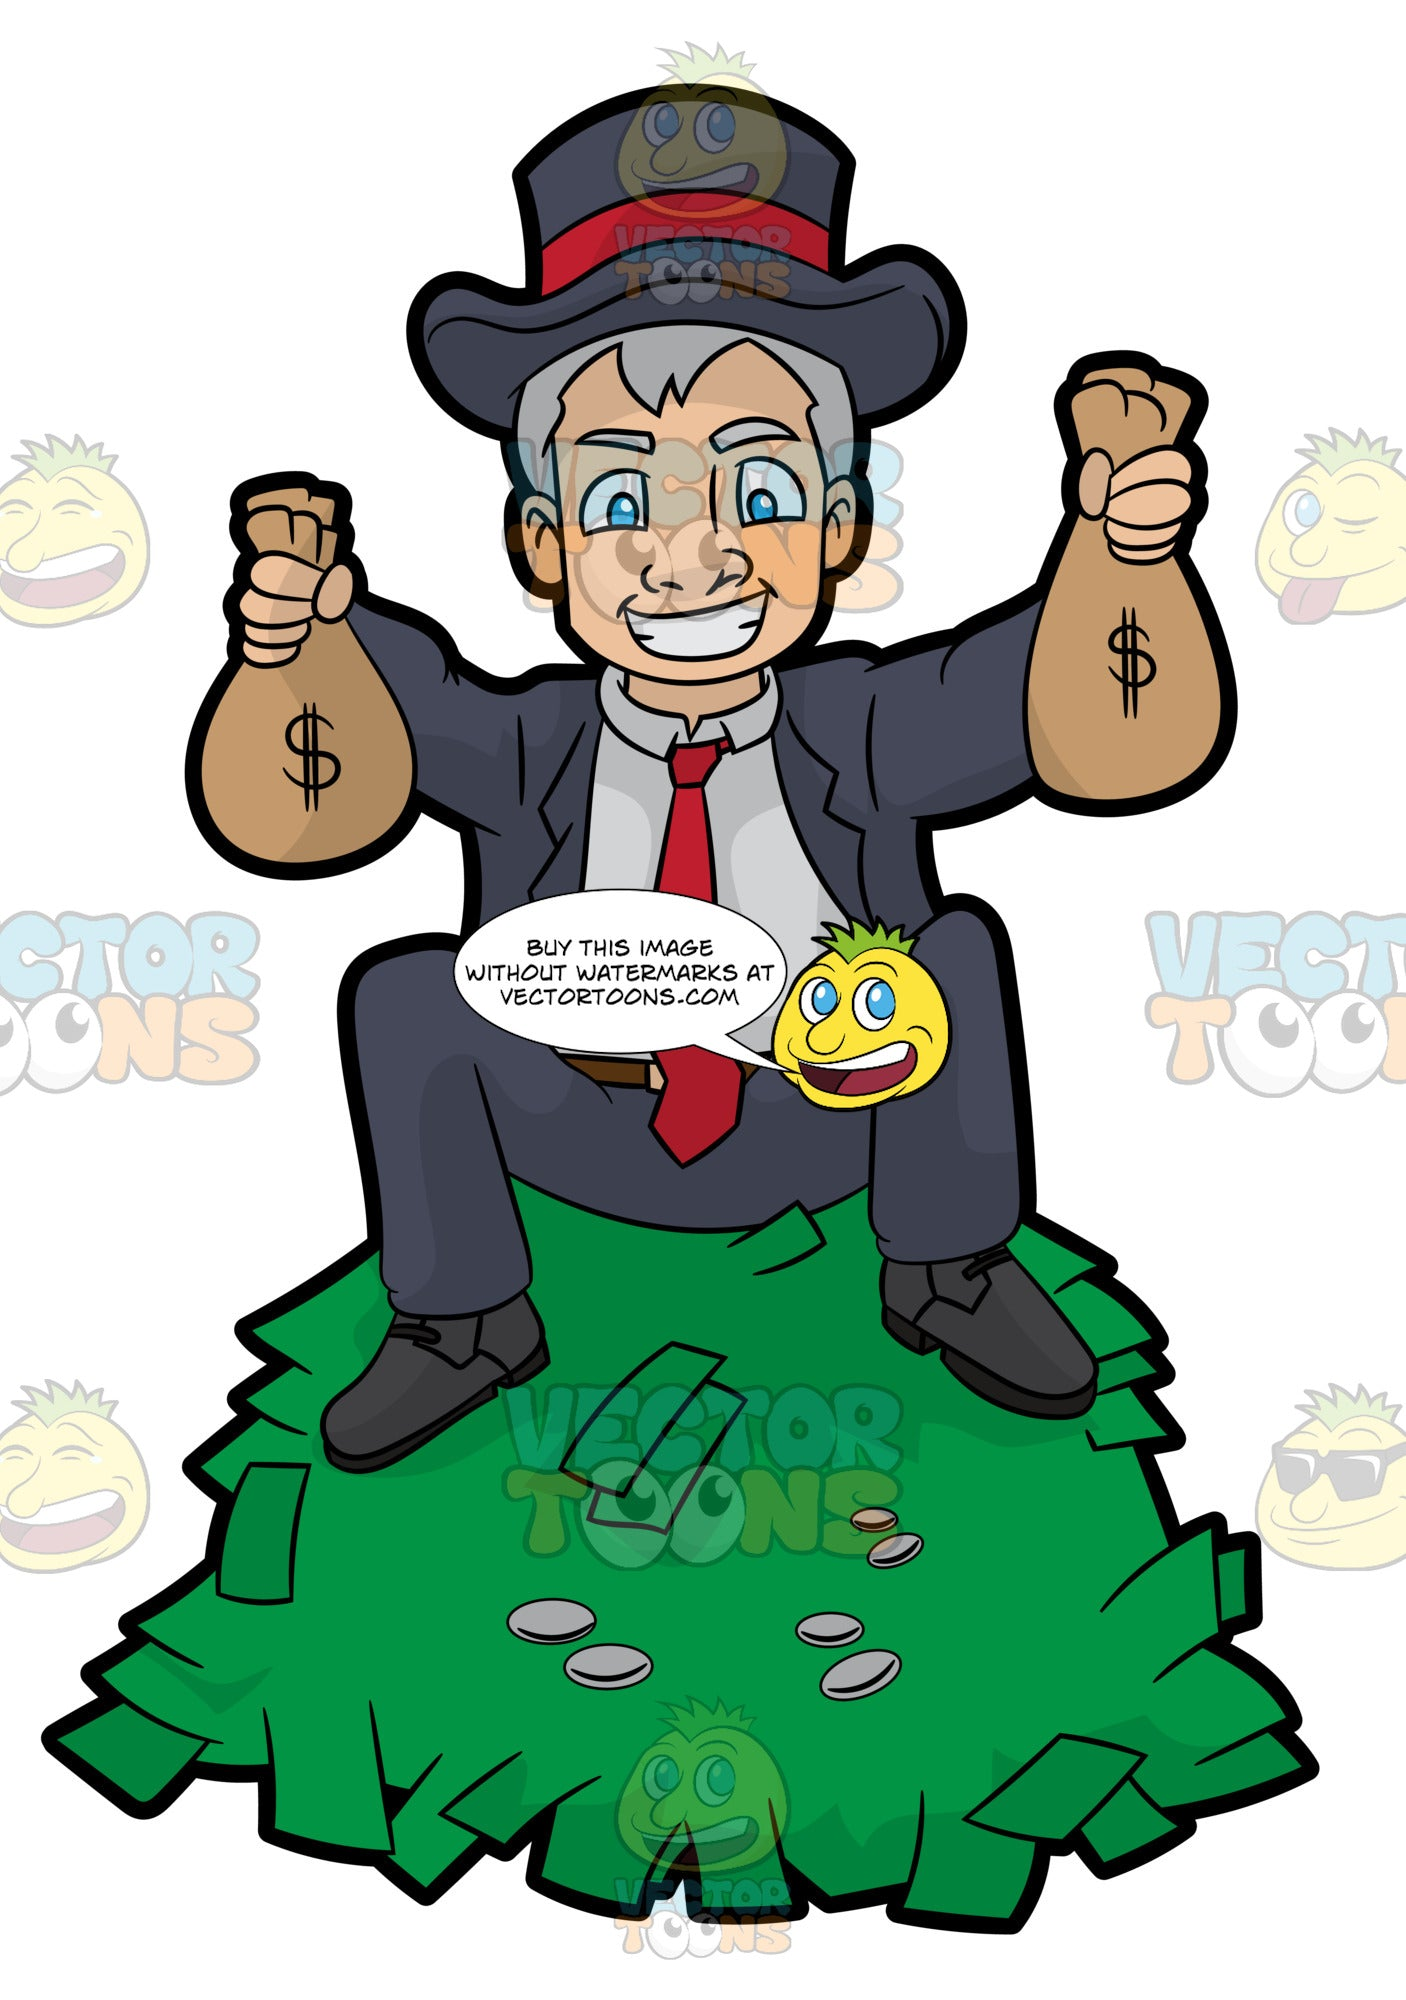 A Man Sitting On Top A Pile Of Cash And Holding Money Bags In His Hands